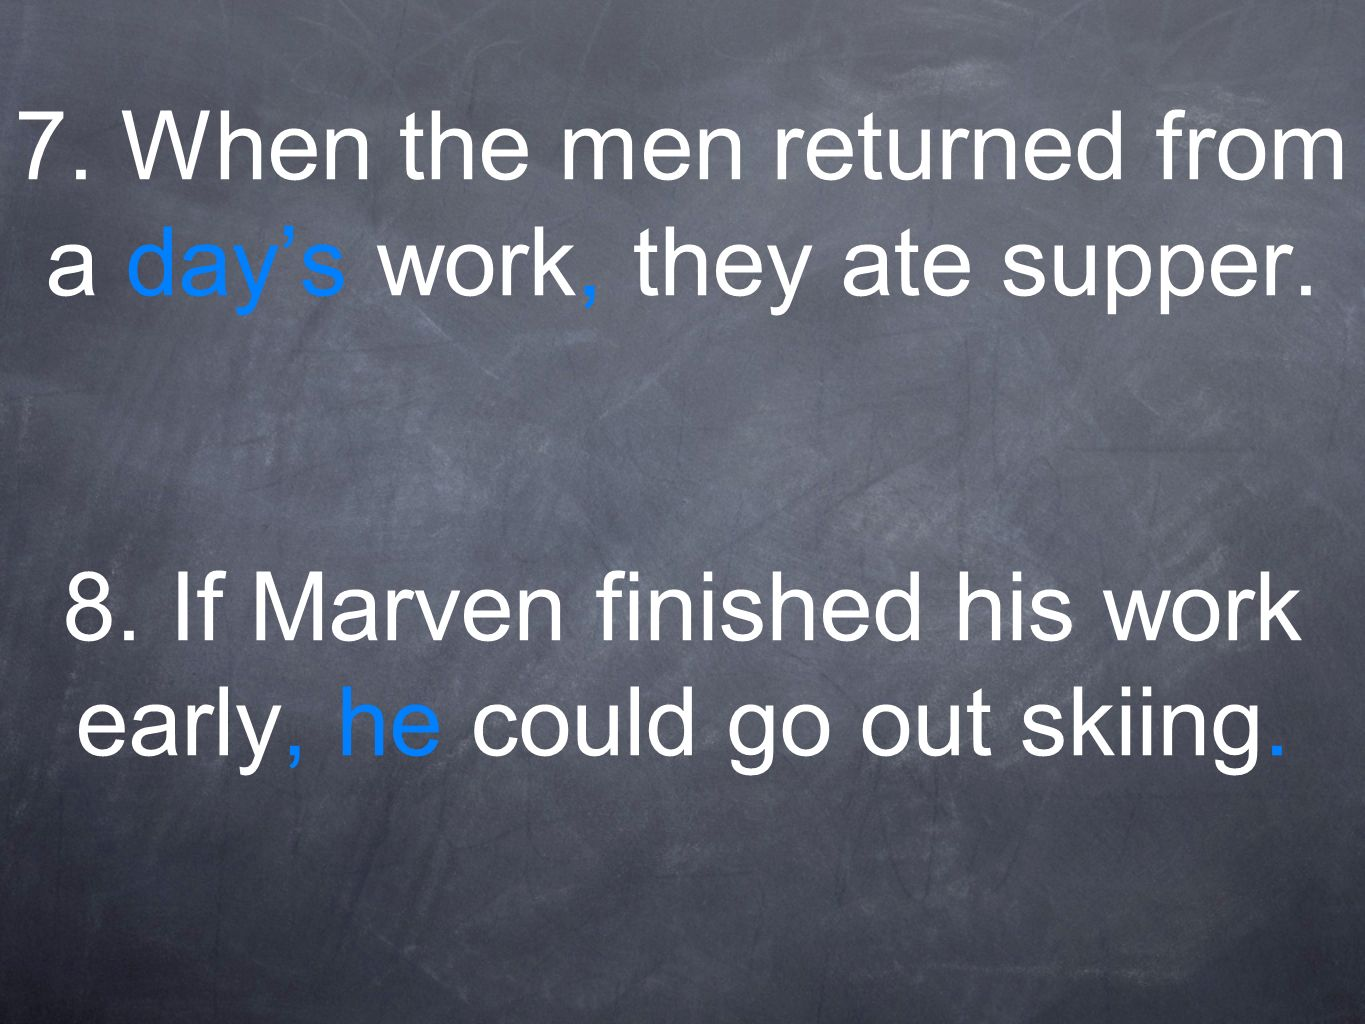 7. When the men returned from a days work, they ate supper. 8. If Marven finished his work early, he could go out skiing.